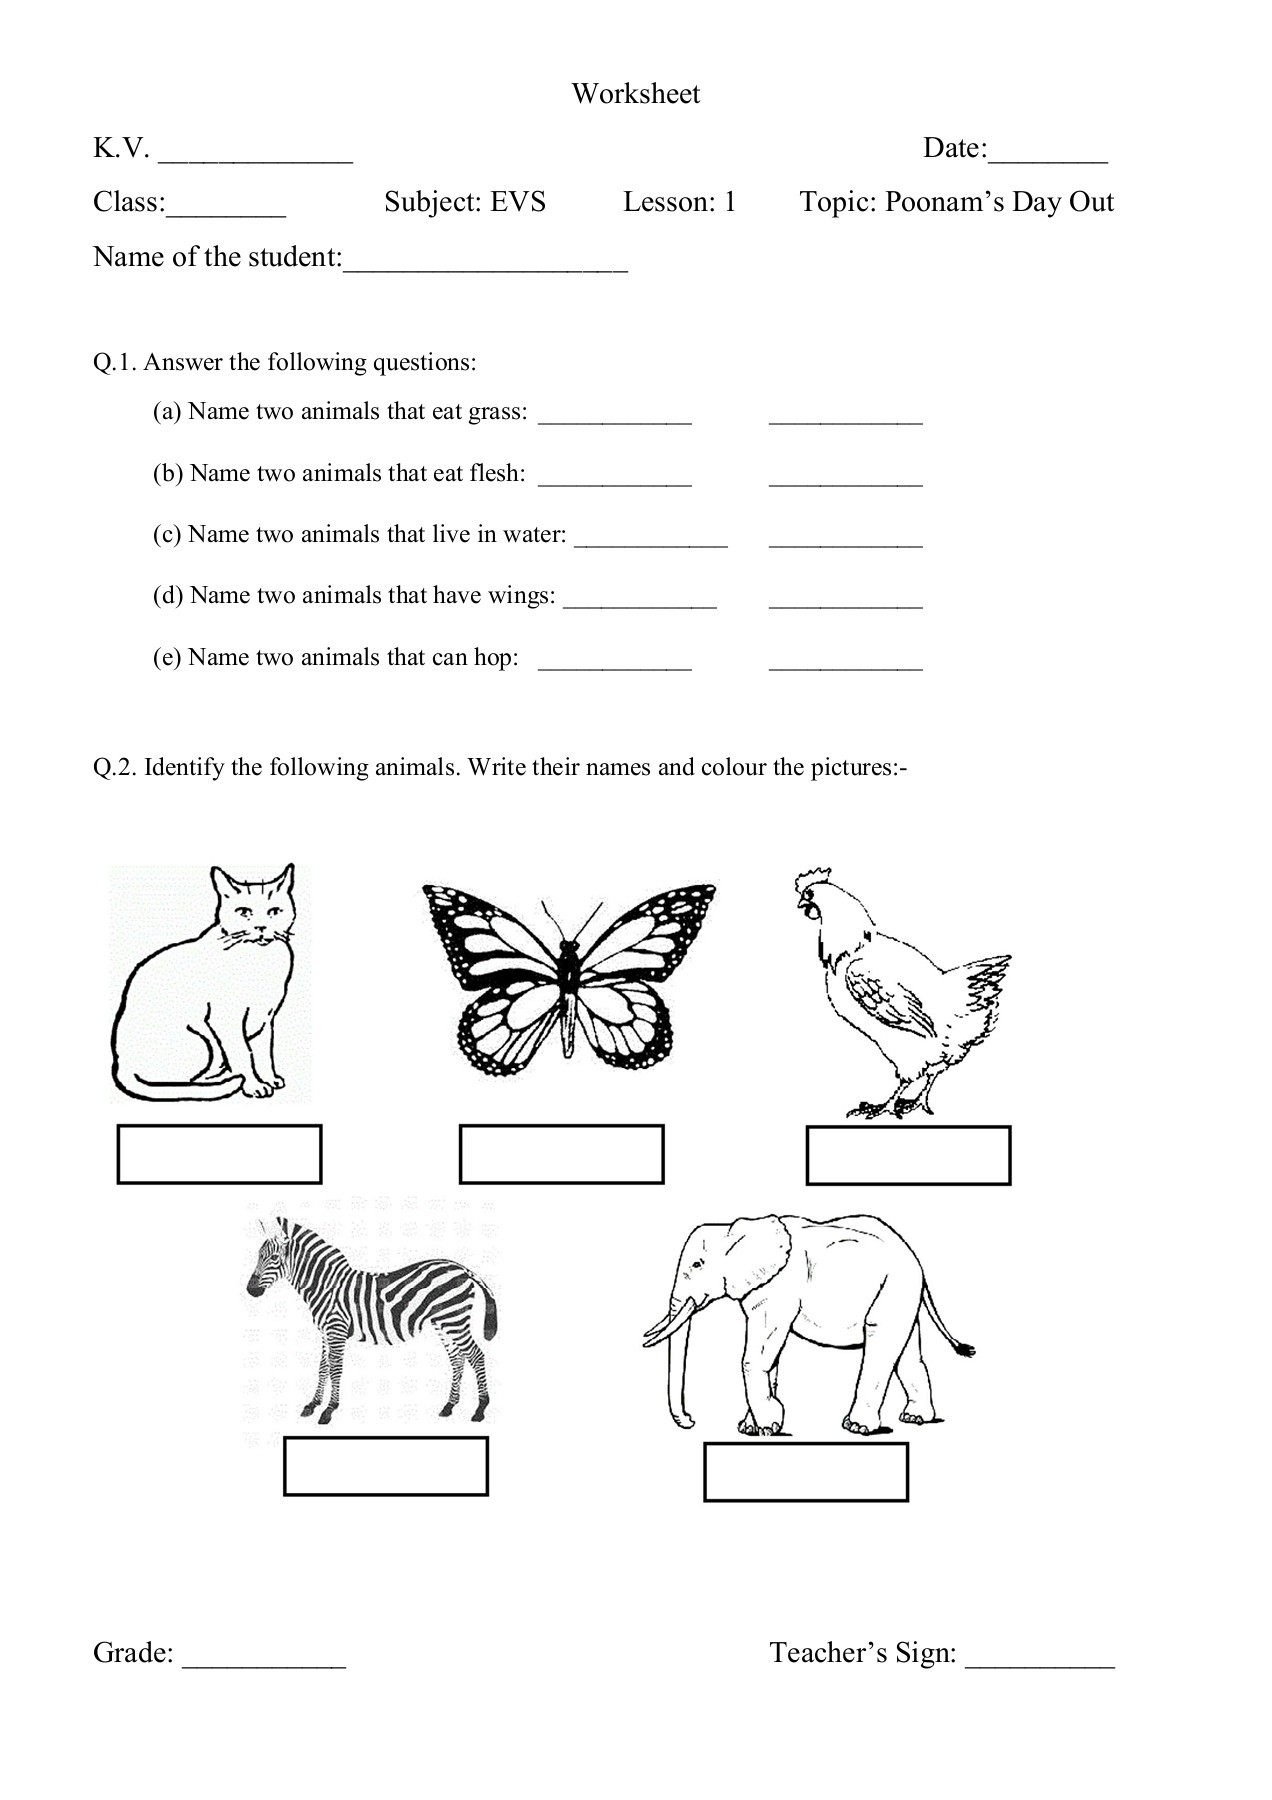 Worksheet For Class 3 Evs